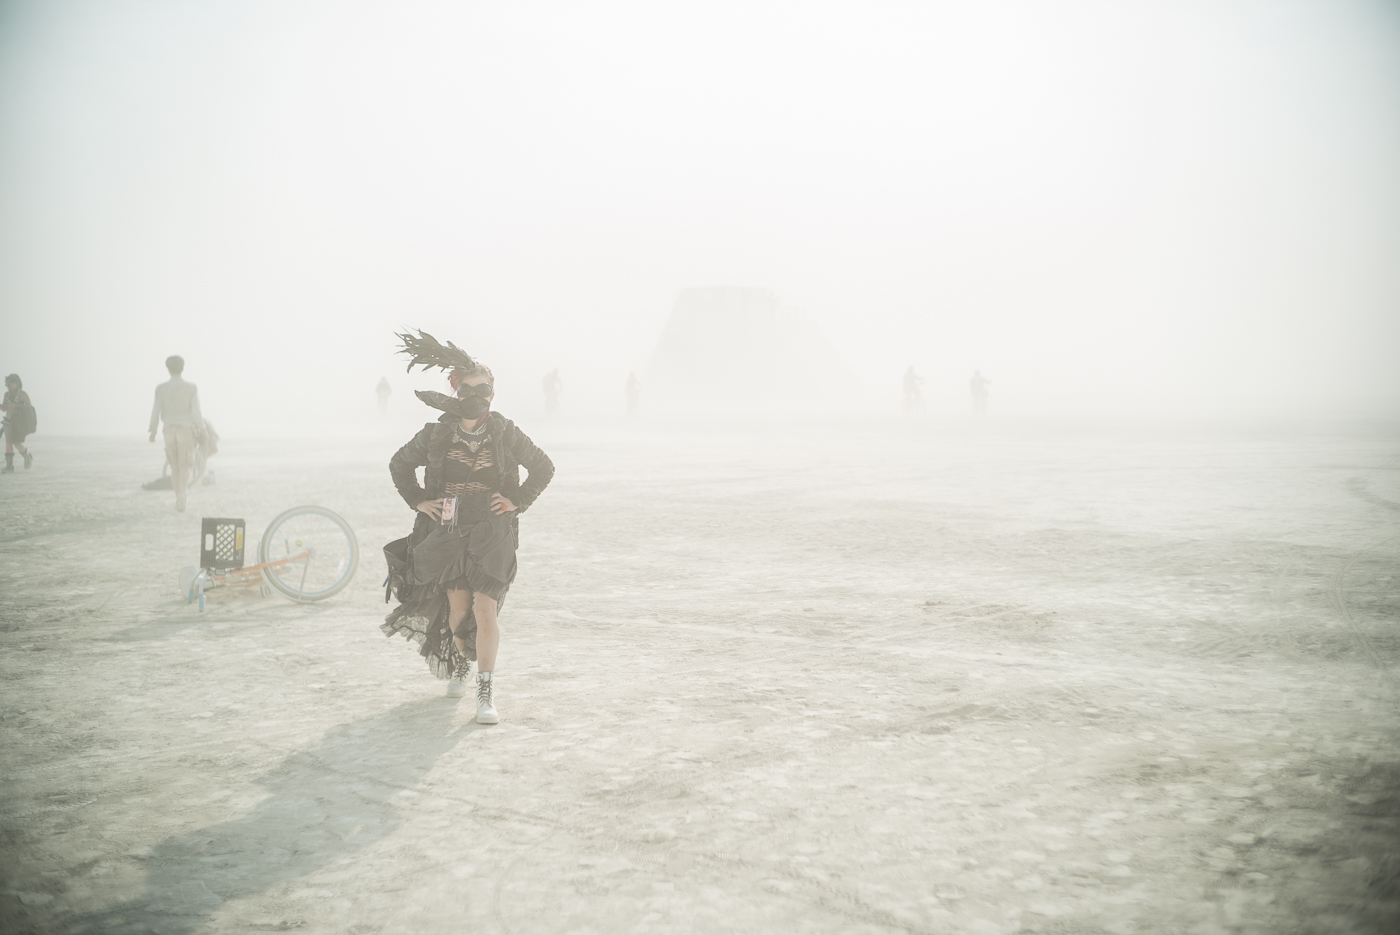 Girl in the Dust, Burning Man 2014: In Dust We Trust - Photos of a Dusty Playa